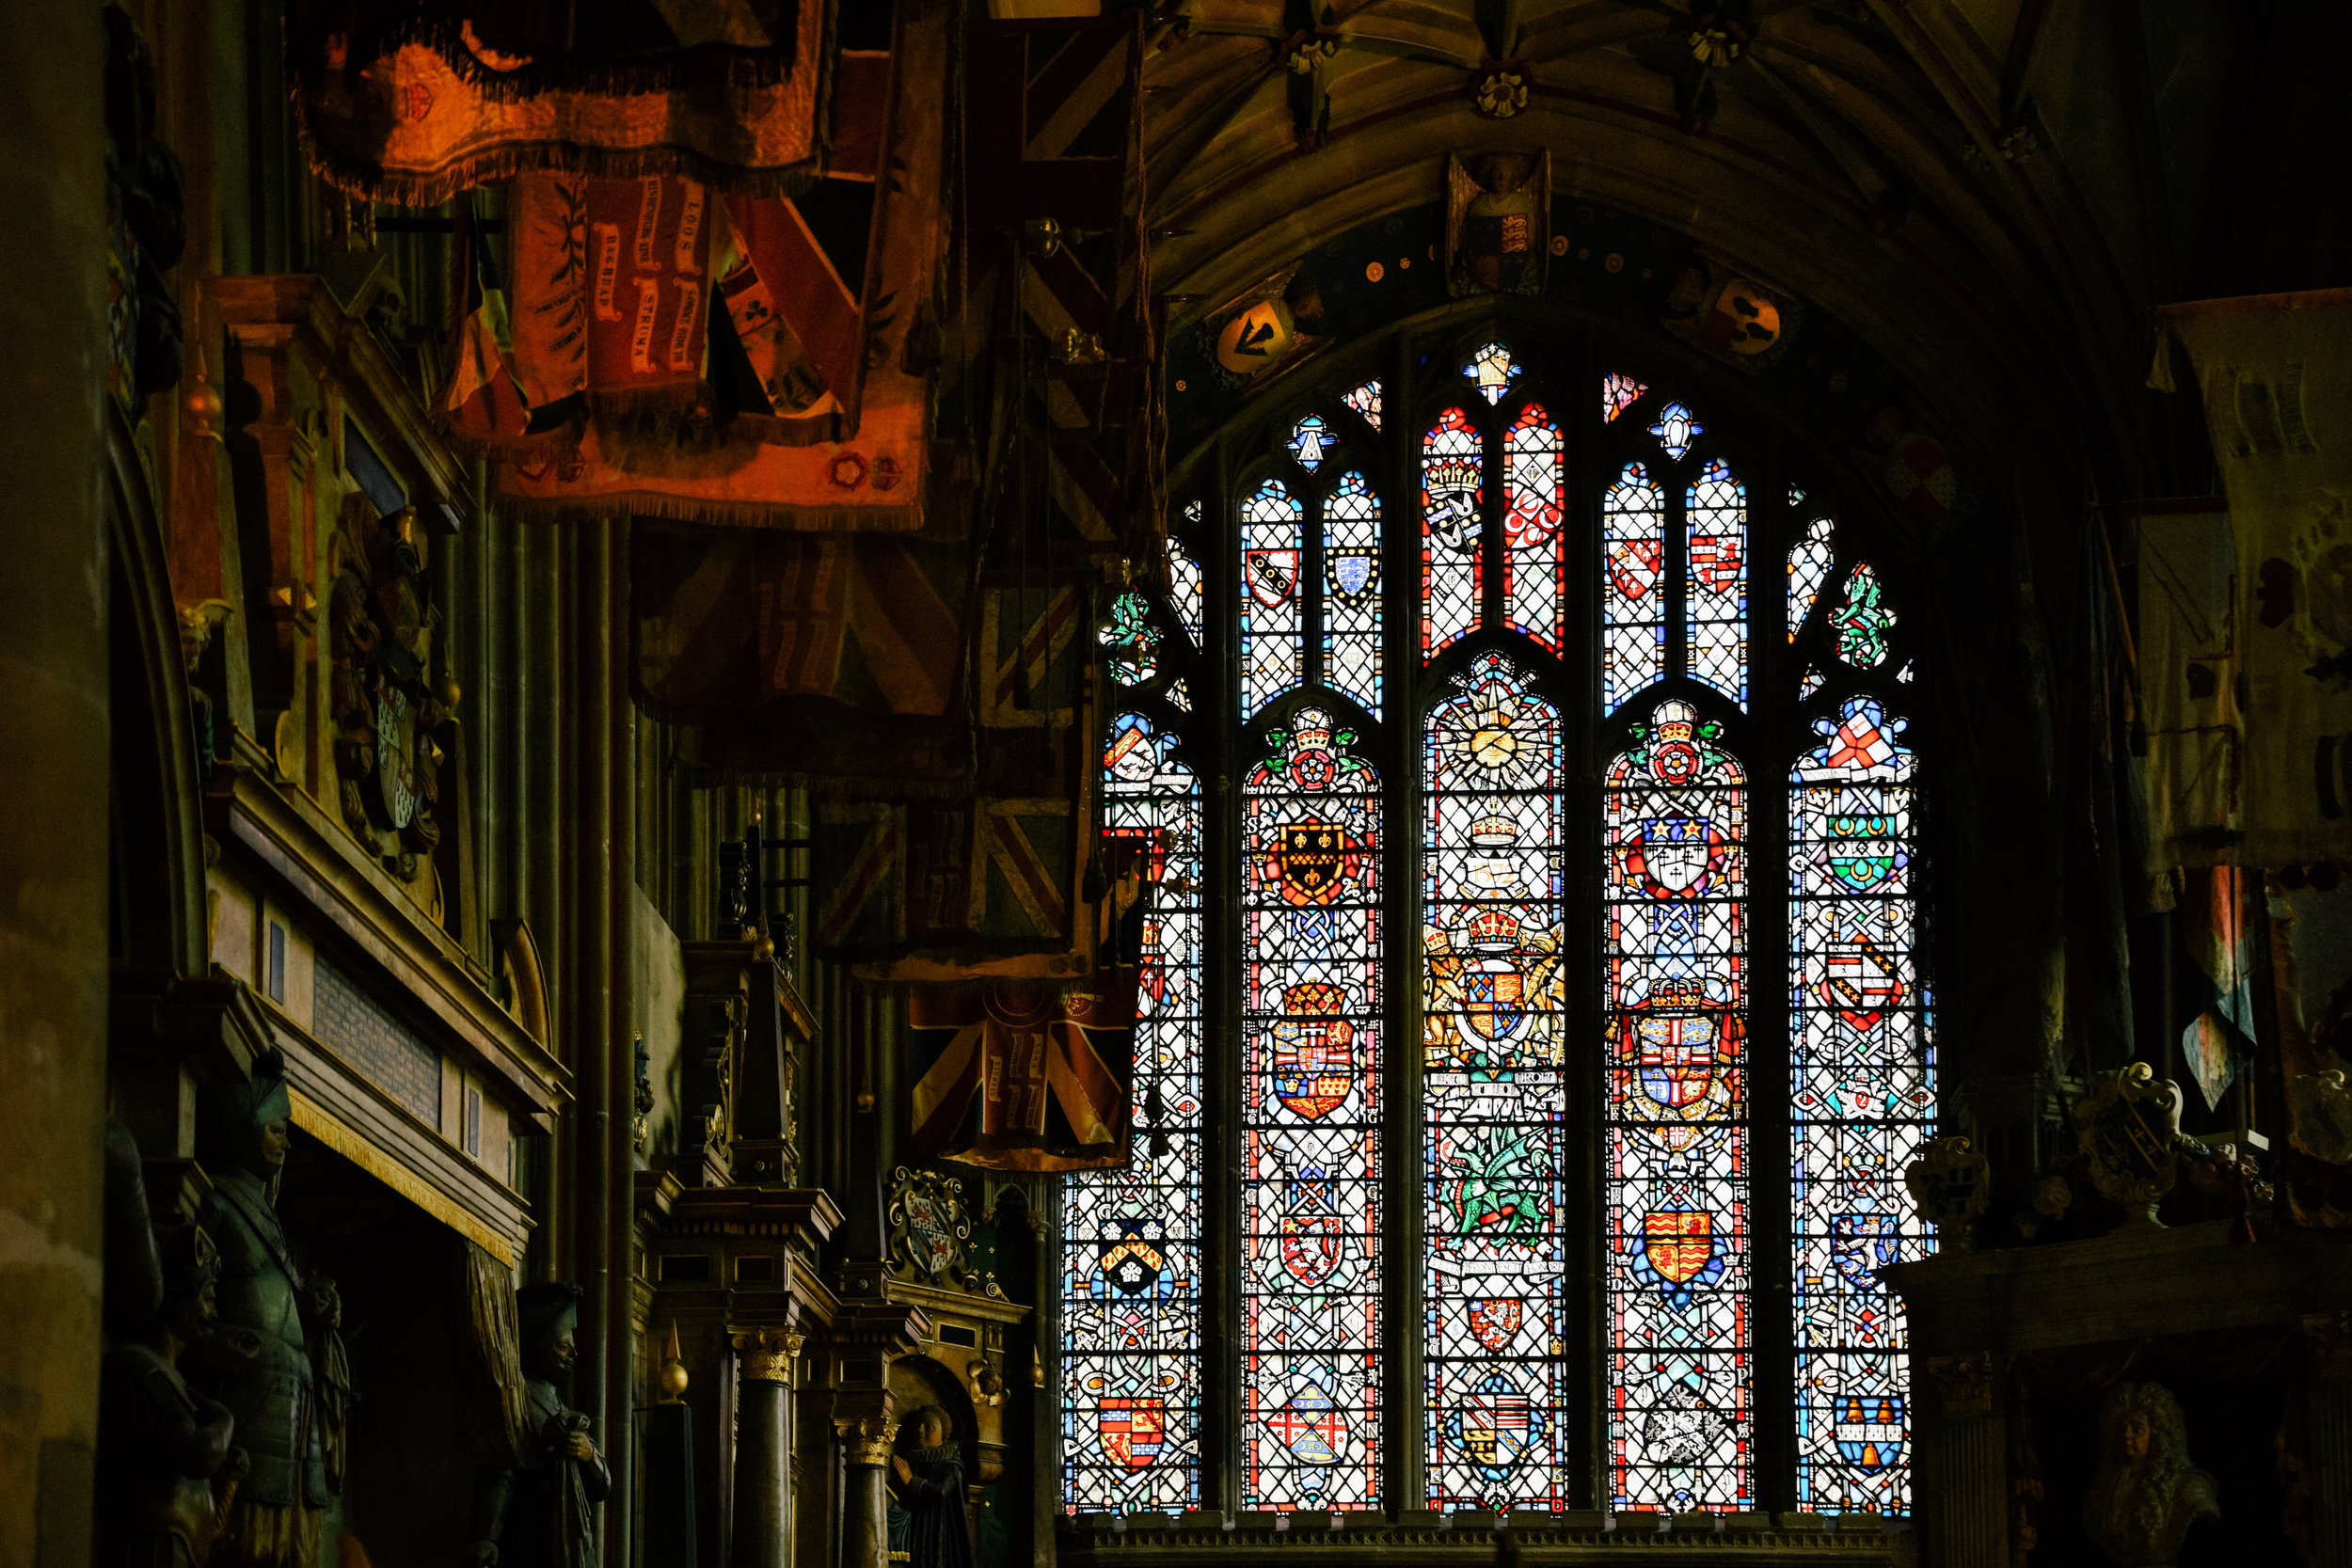 stained glass windows in canterbury